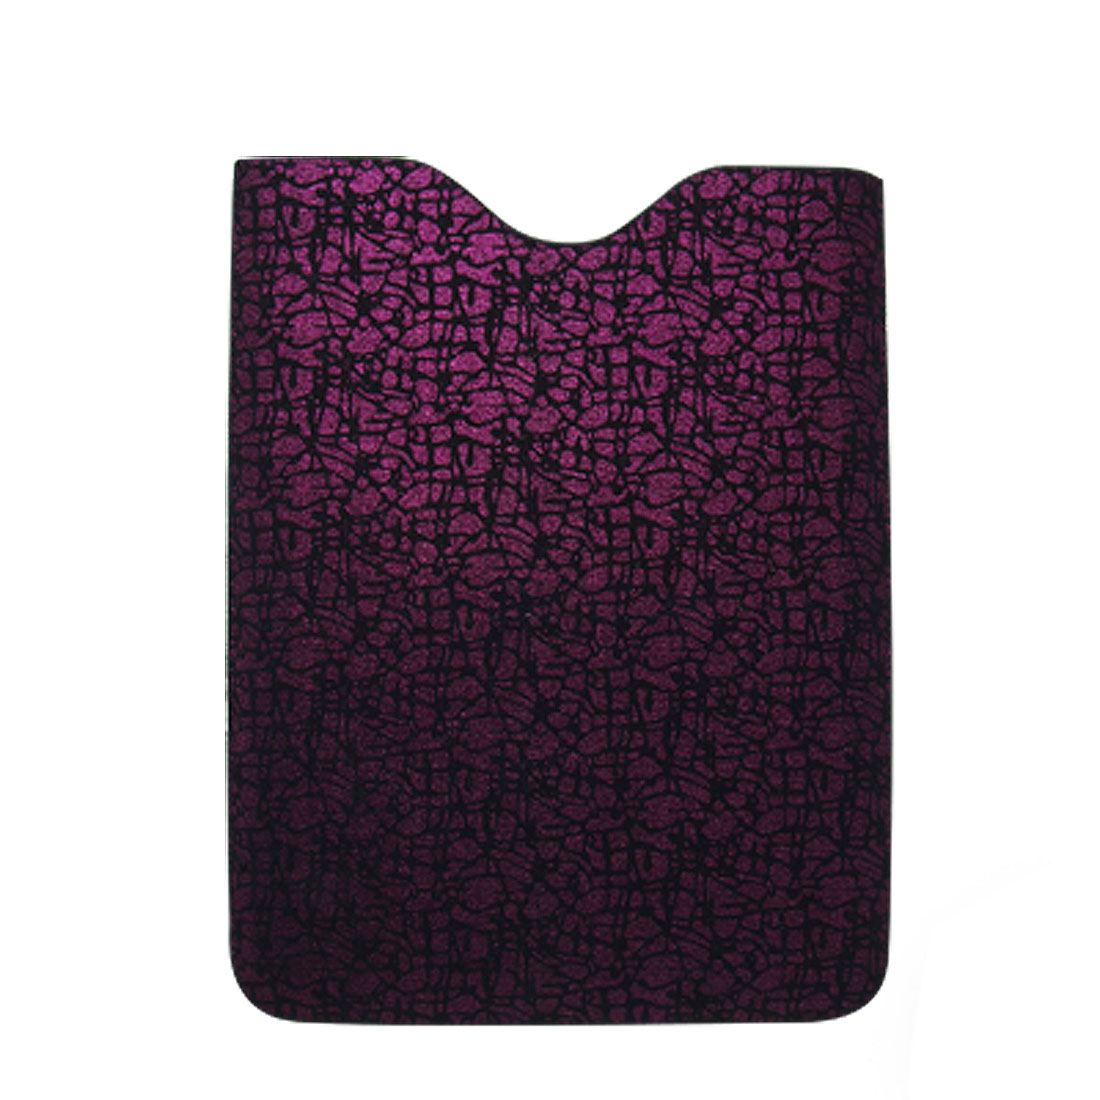 Fuchsia Irregular Pattern Pull Tab Faux Leather Lined Case Sleeve for iPad 1